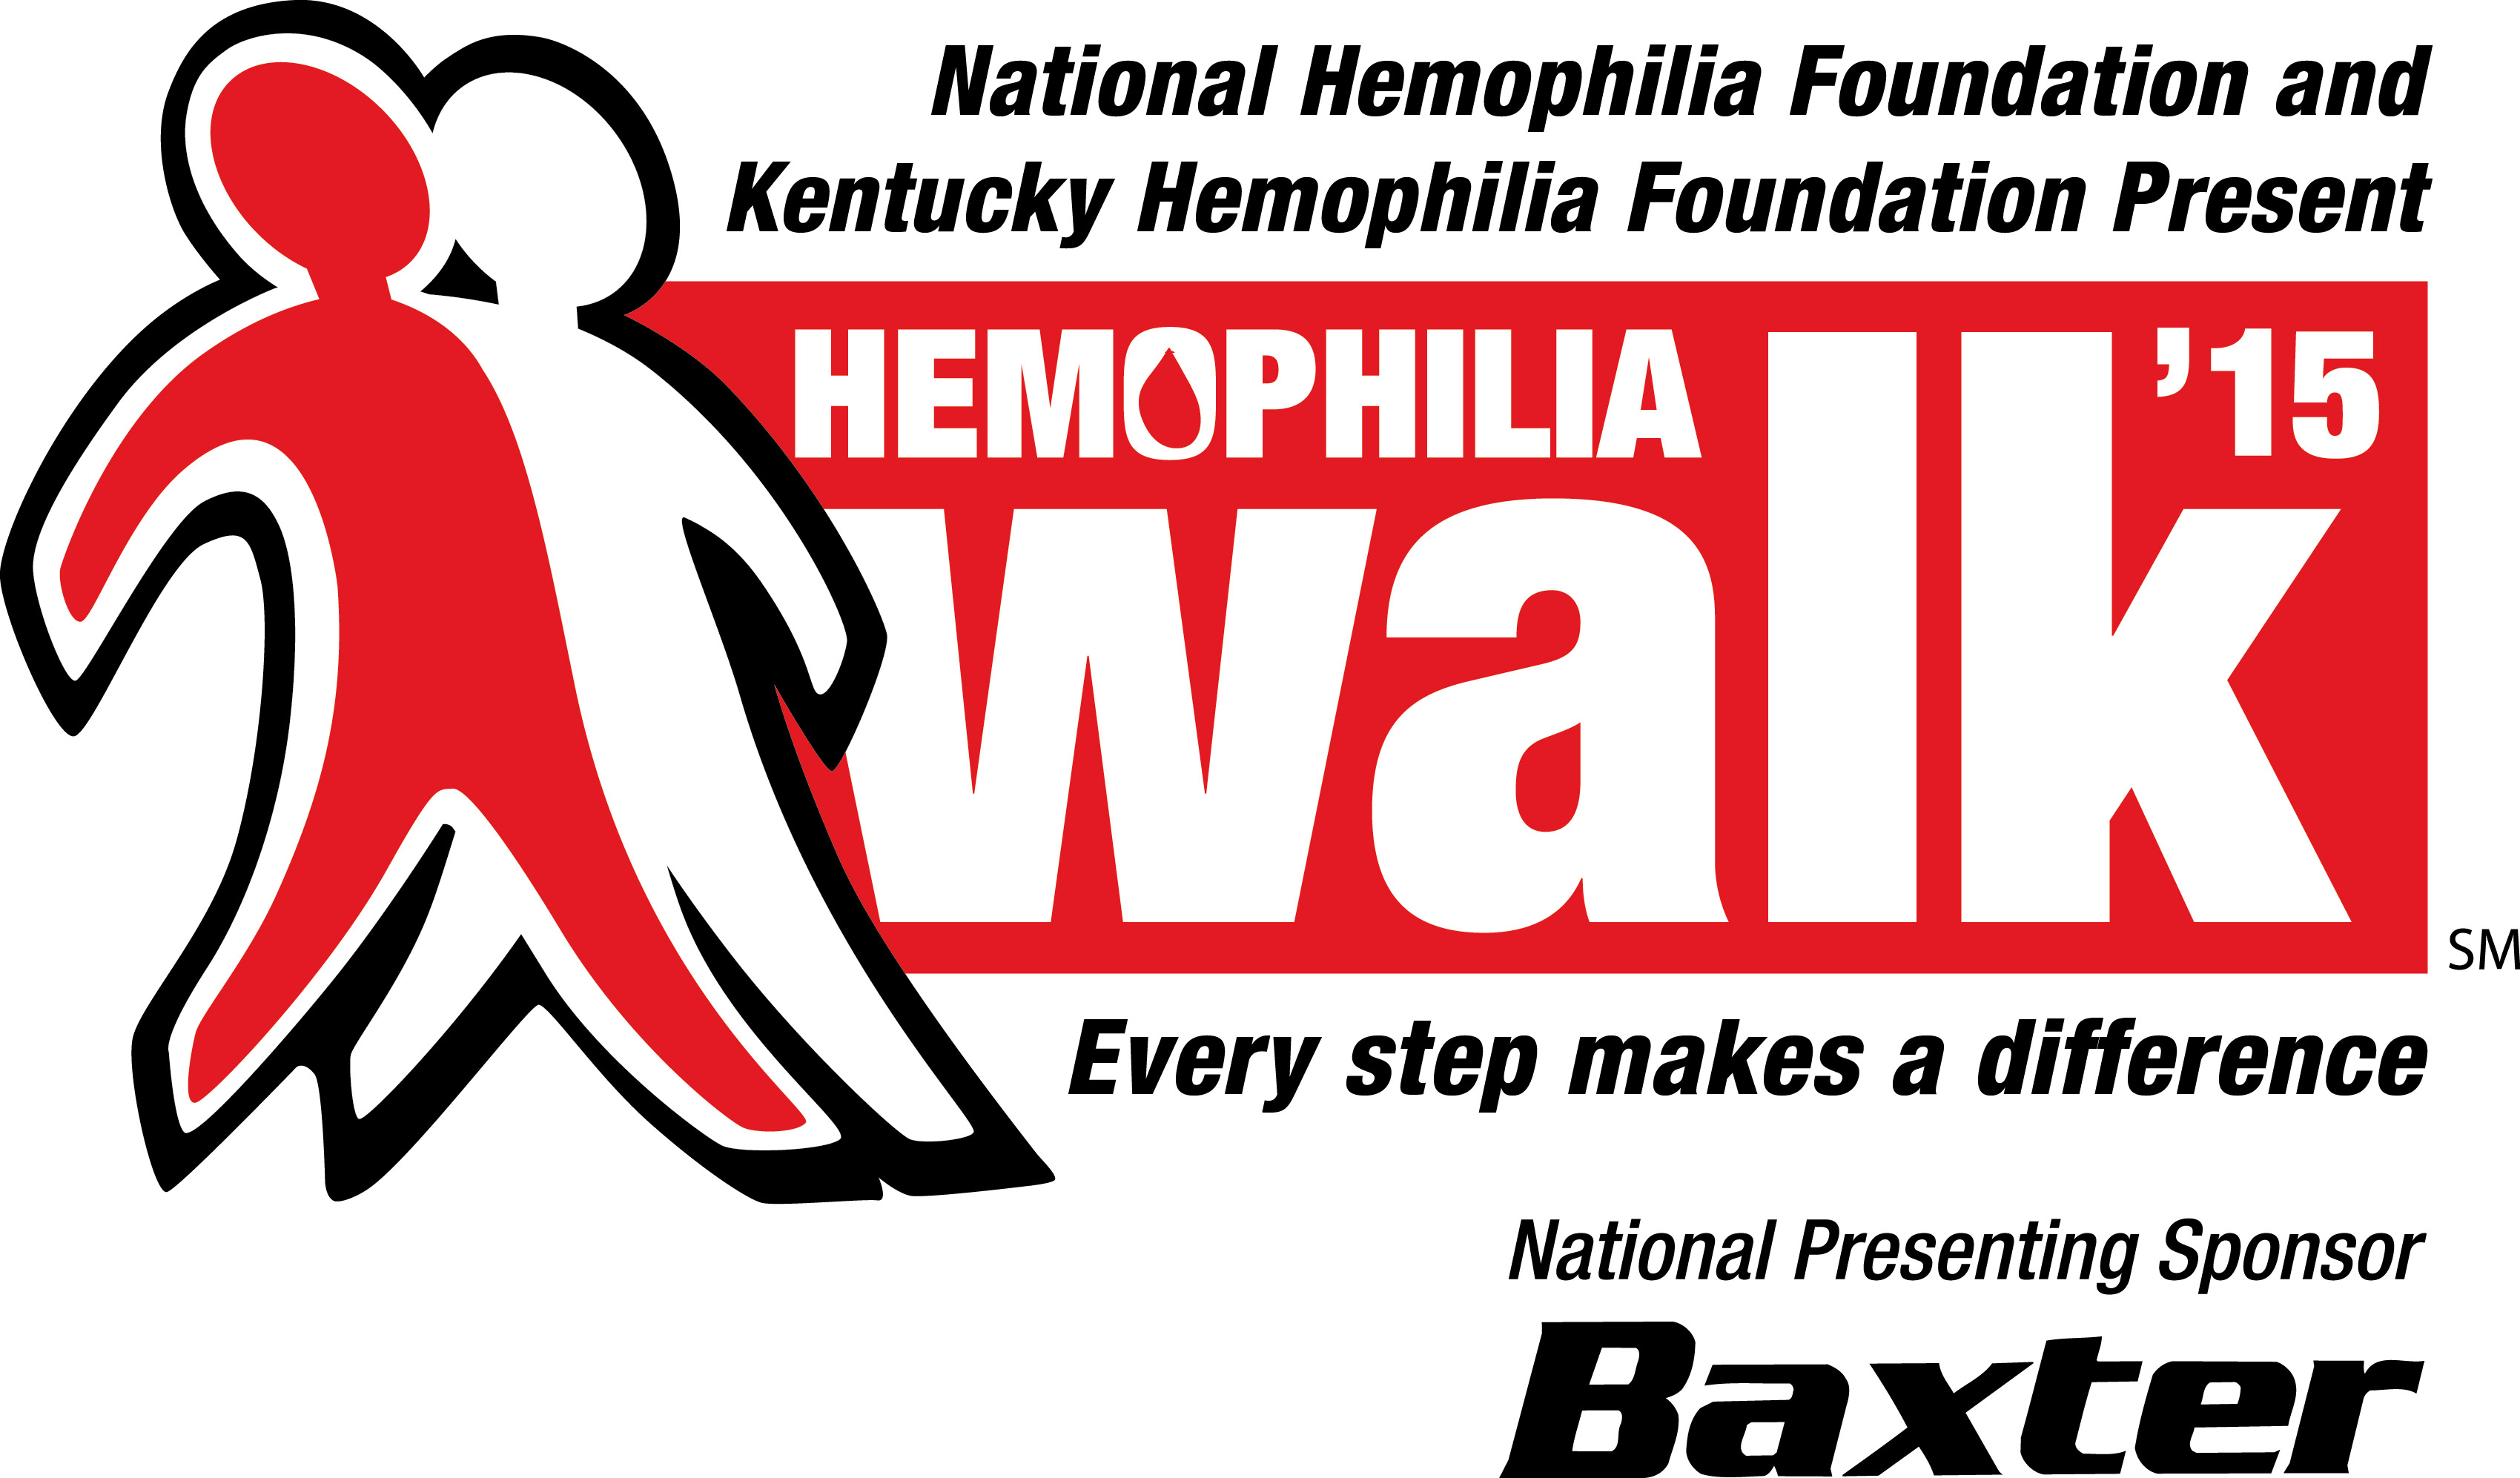 National Hemophilia Foundation and Kentucky Hemophilia Foundation Presents